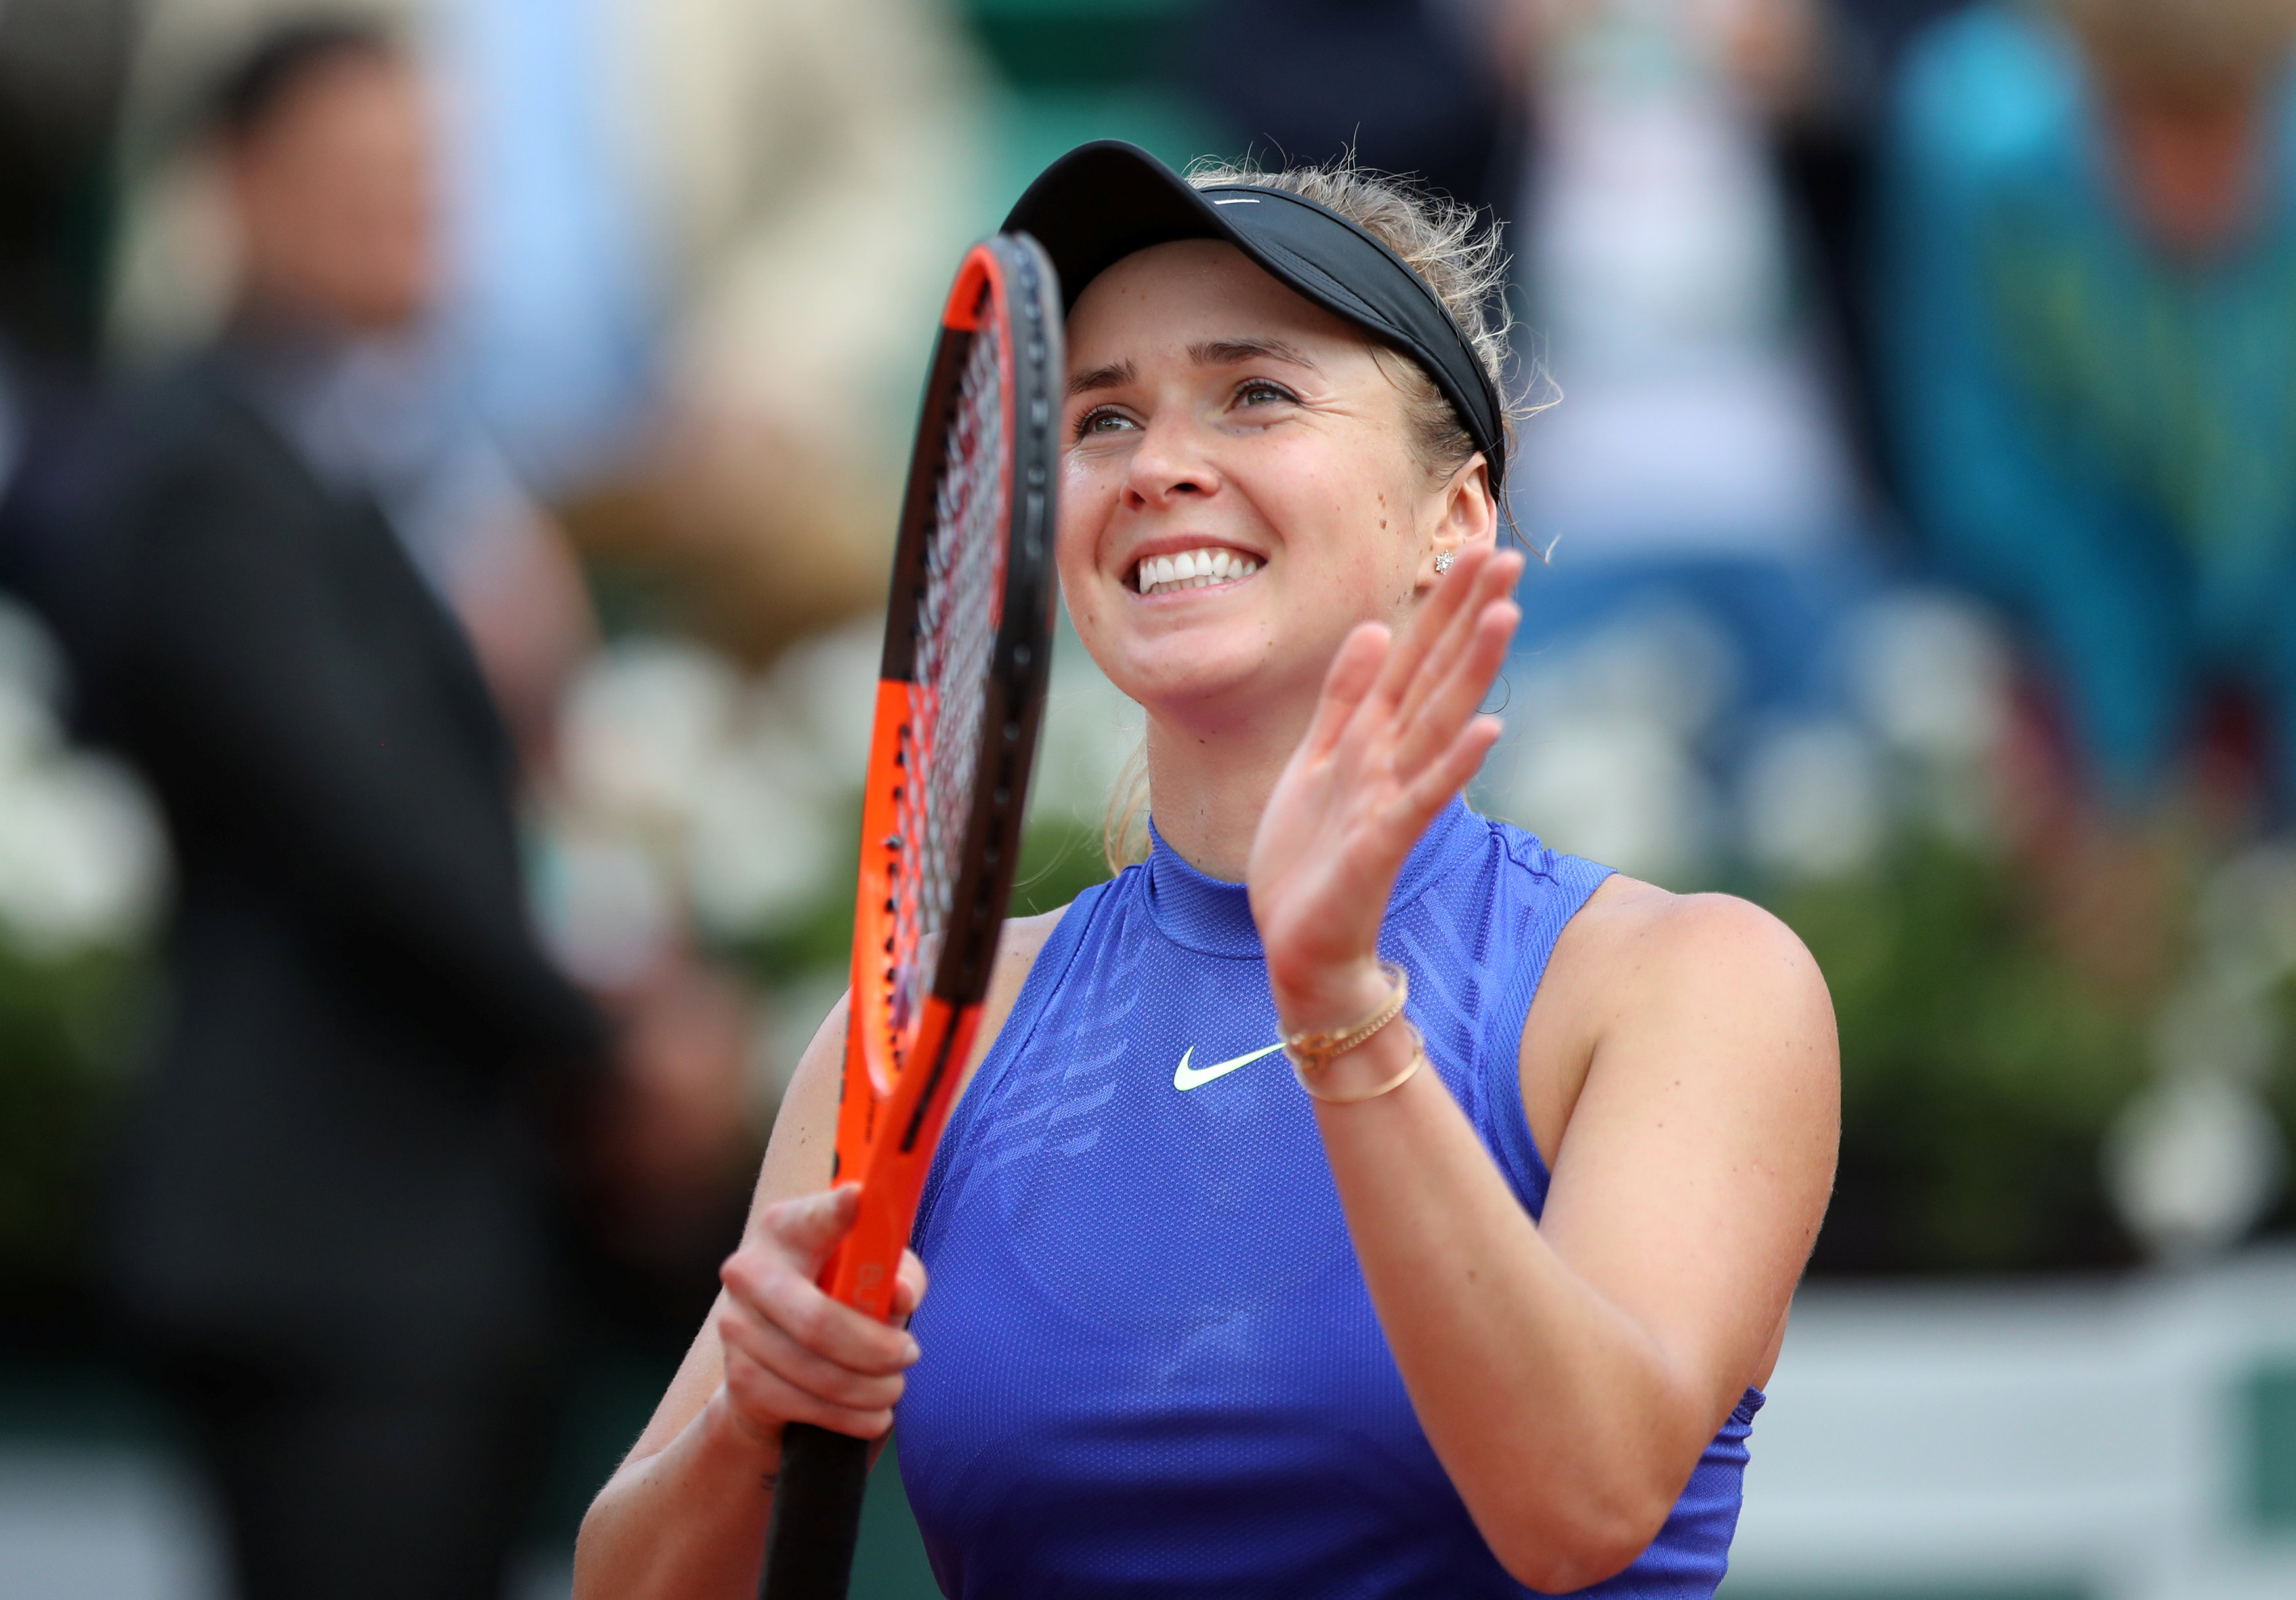 Tennis: Never-say-die Svitolina ends Martic run in French Open